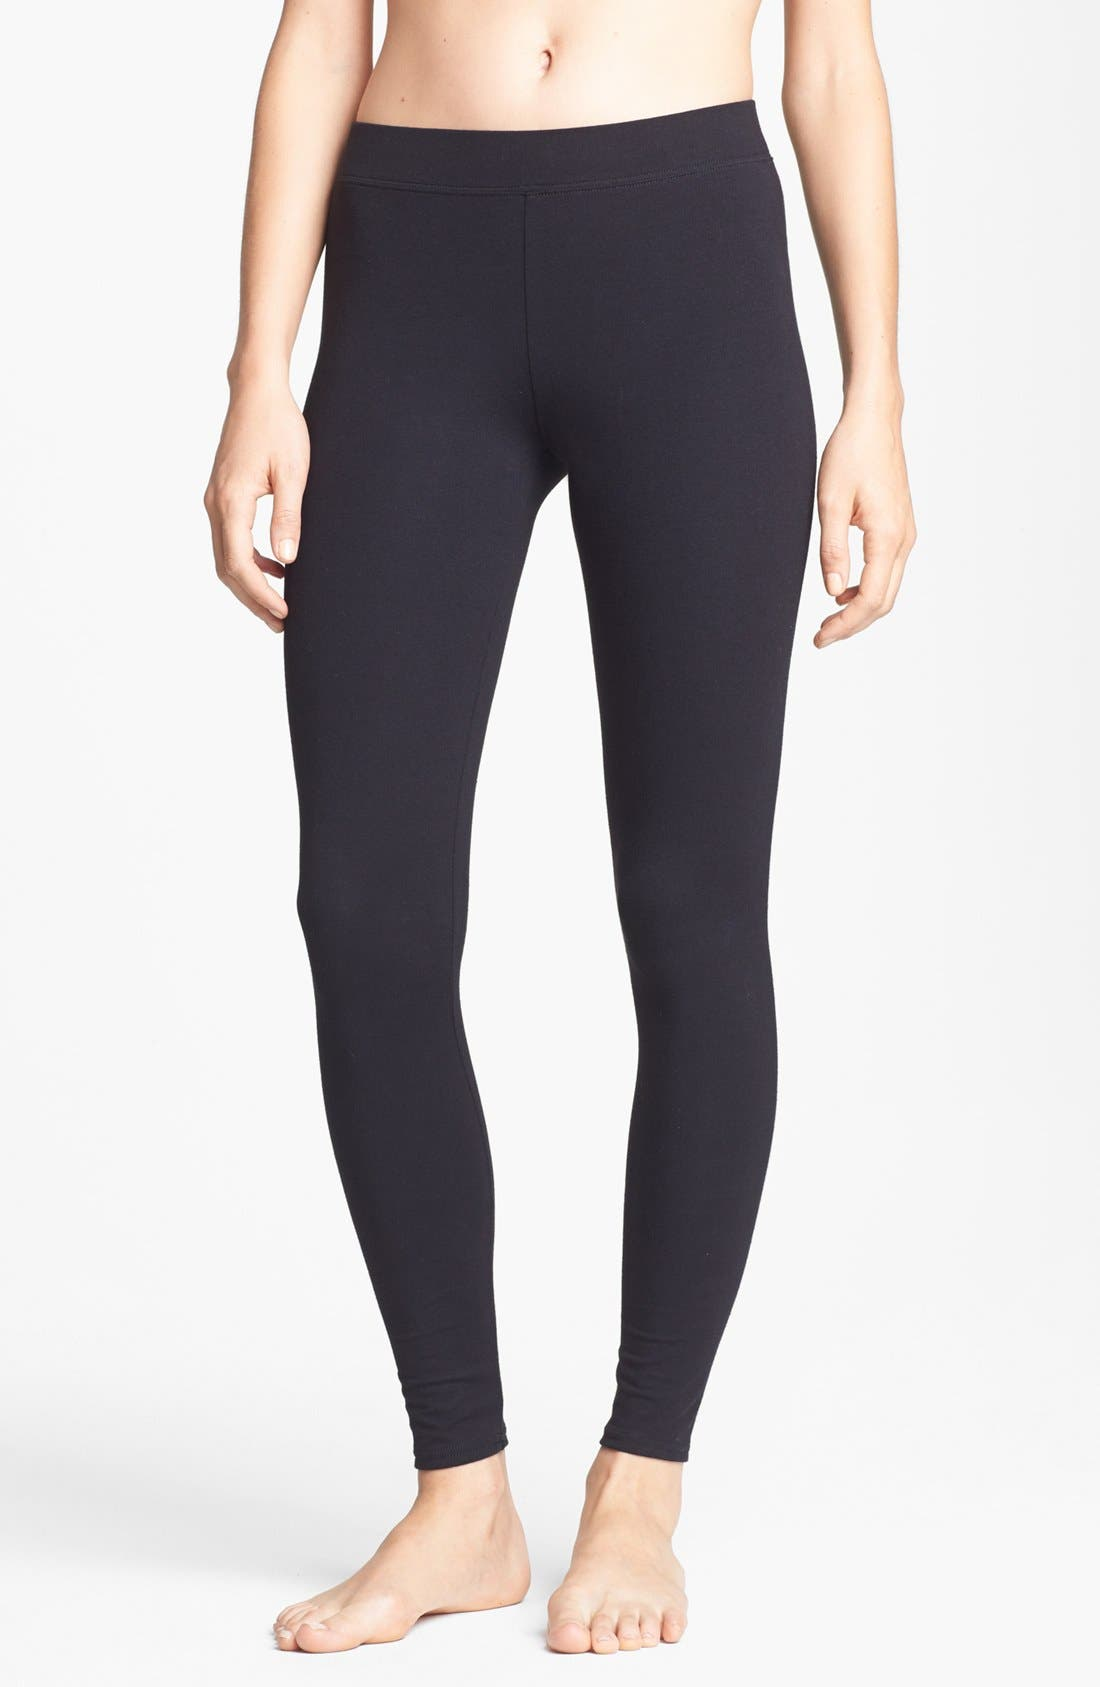 Nordstrom Go-To Leggings